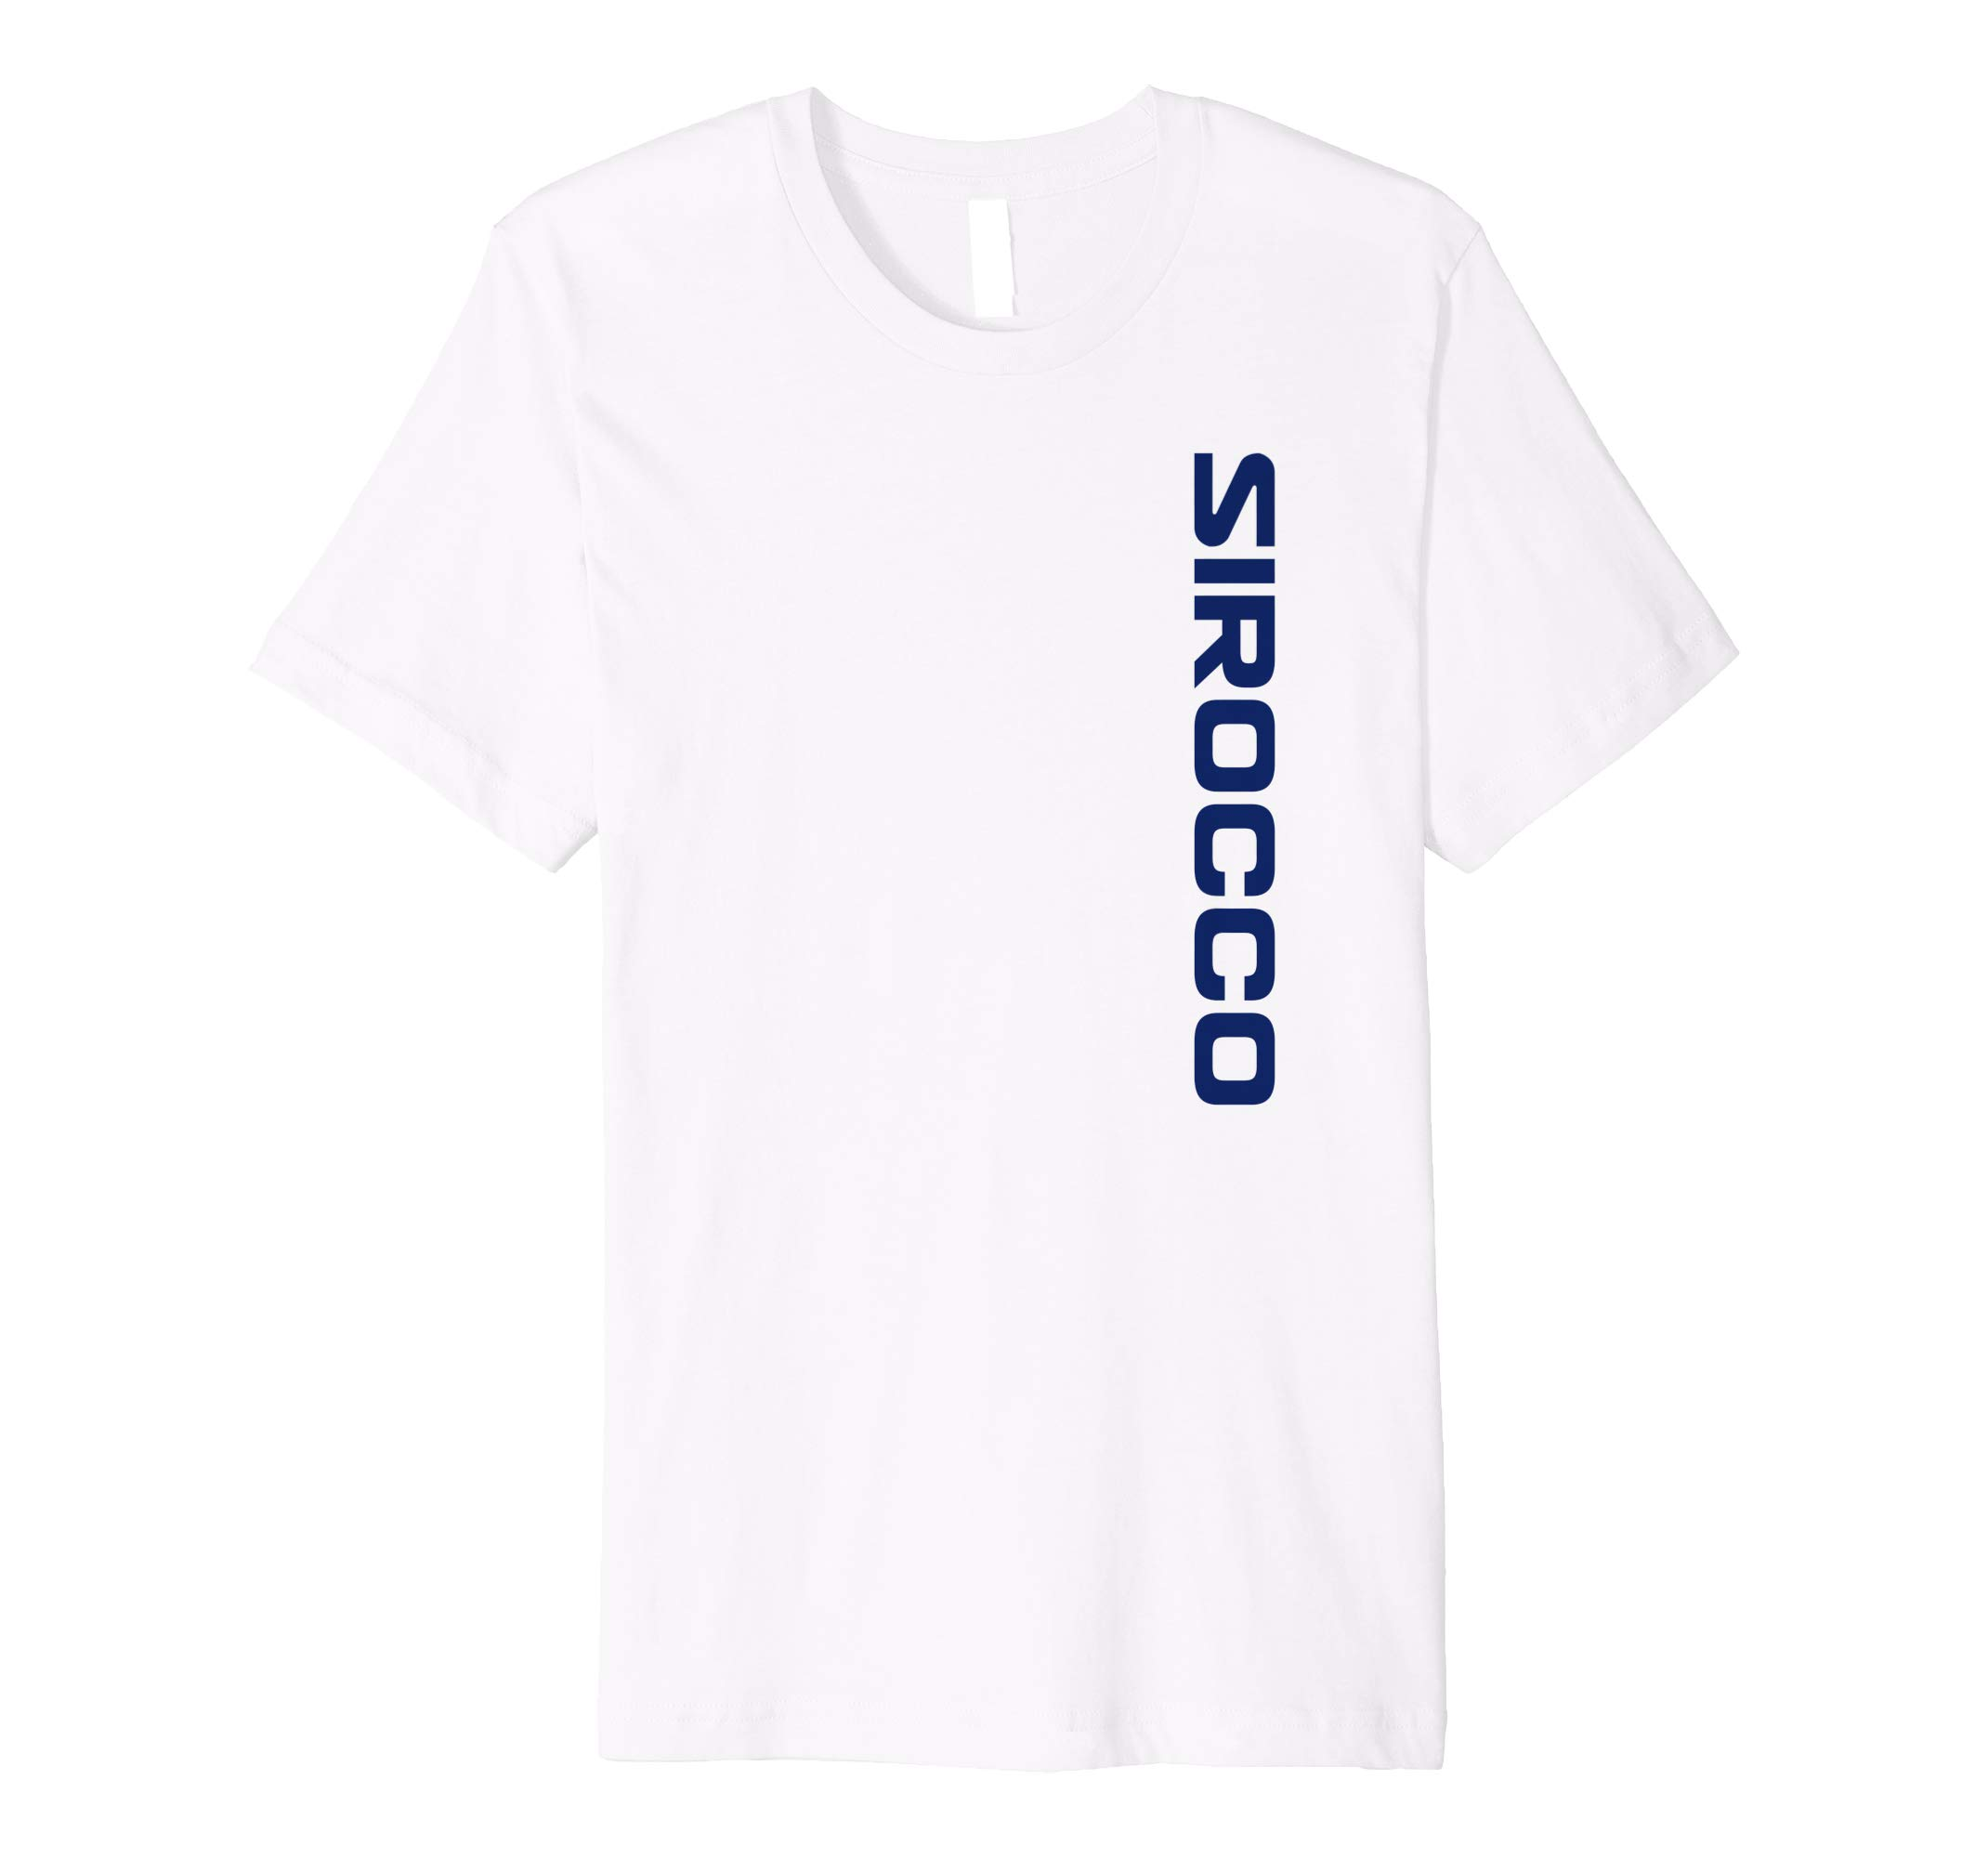 Sirocco below the deck shirt for yachting Premium T-Shirt-ANZ